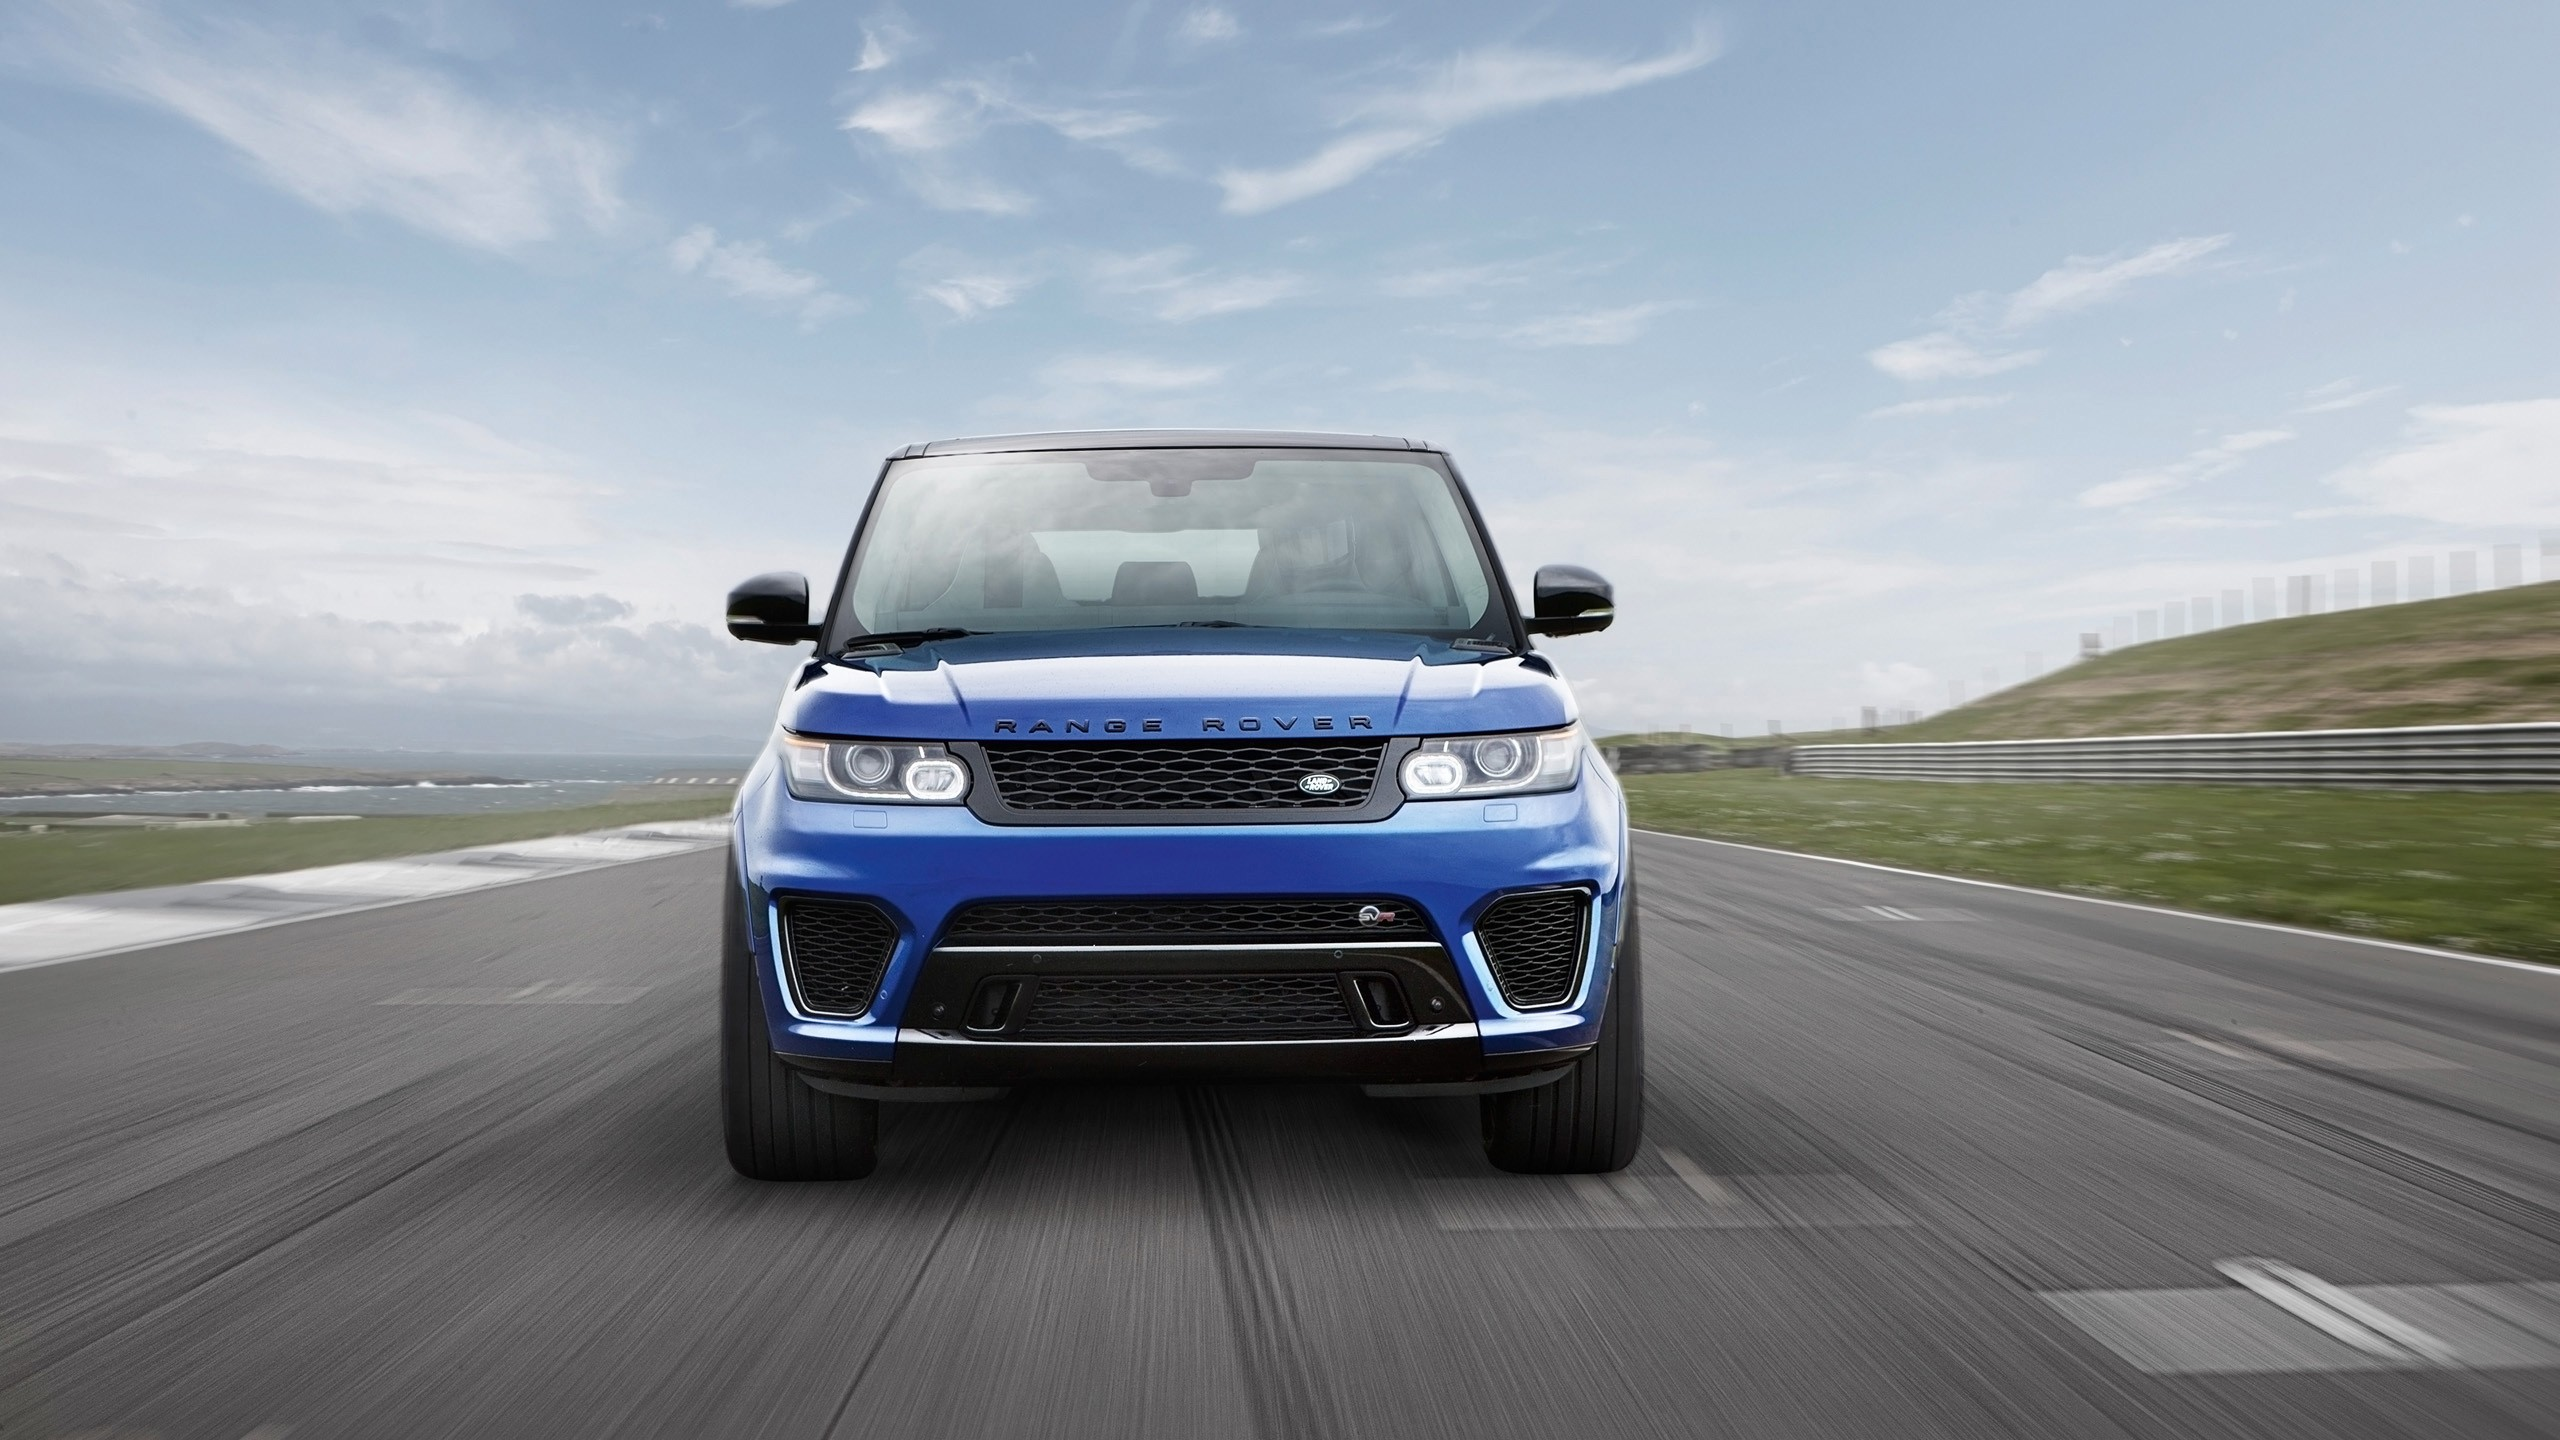 2015 land rover range rover sport svr 4 wallpaper hd car wallpapers id 4752. Black Bedroom Furniture Sets. Home Design Ideas